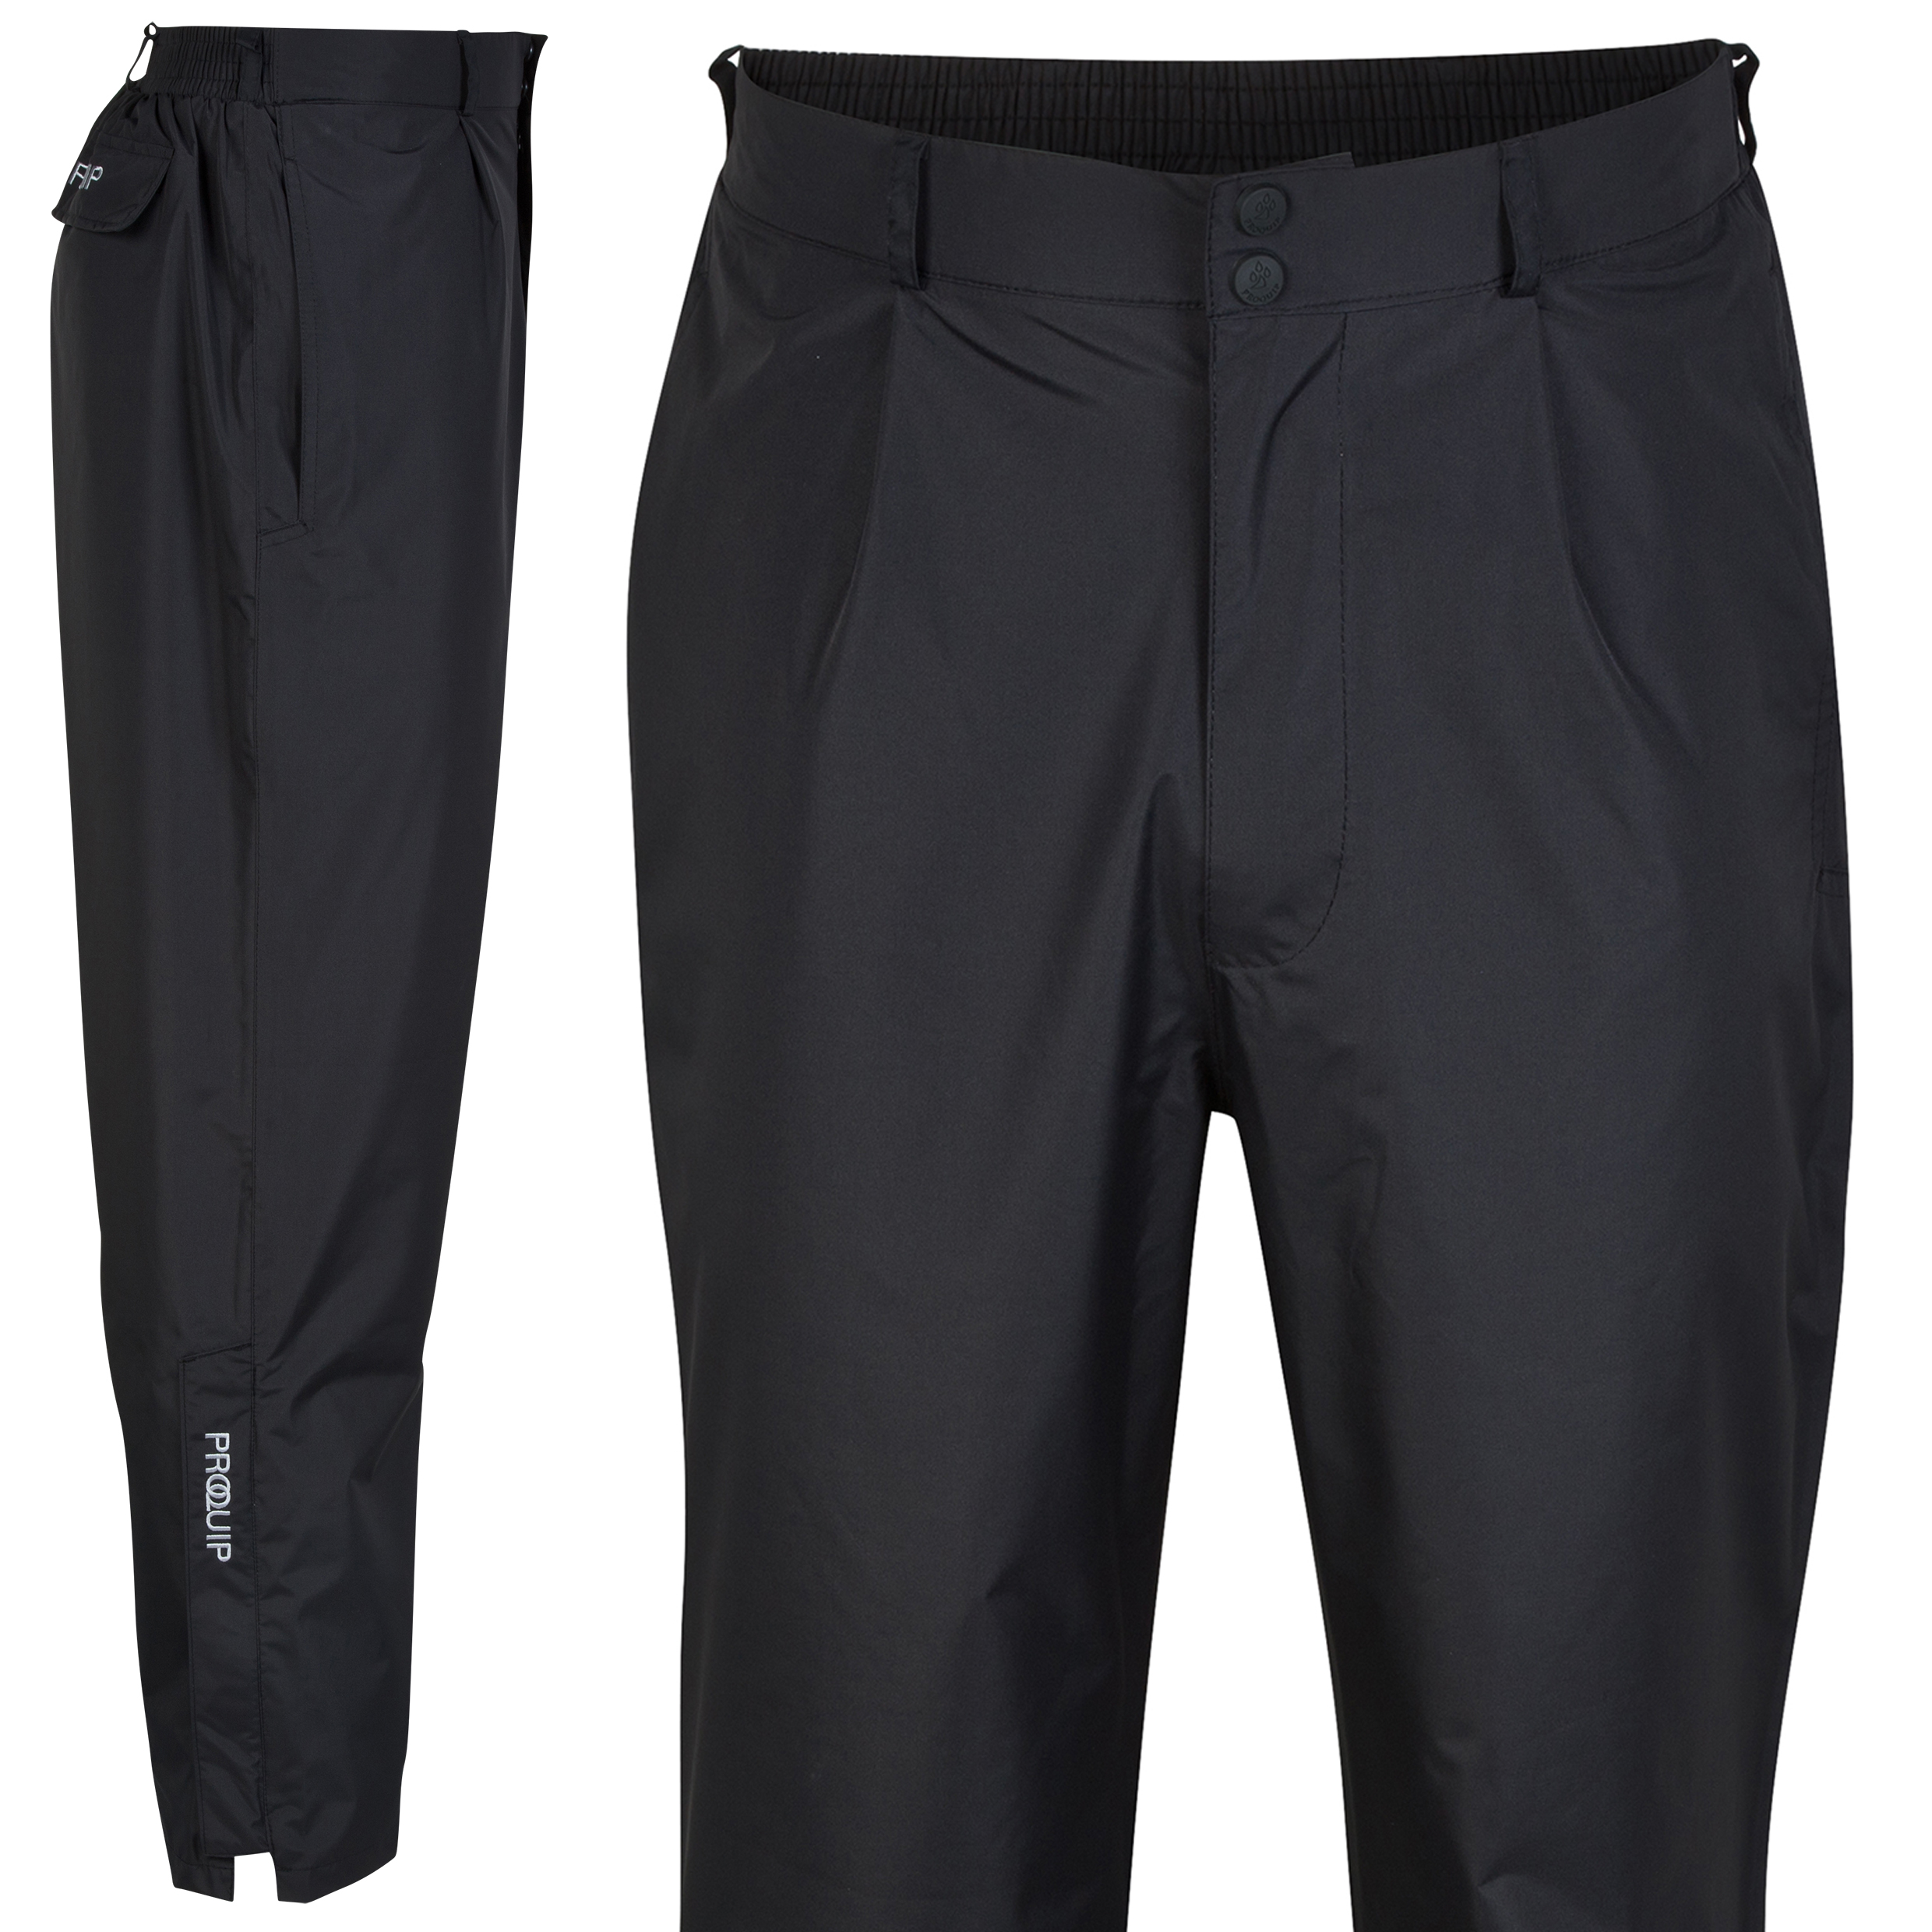 The 2014 Ryder Cup Aquastorm Waterproof Trouser 33 Inch Leg Black